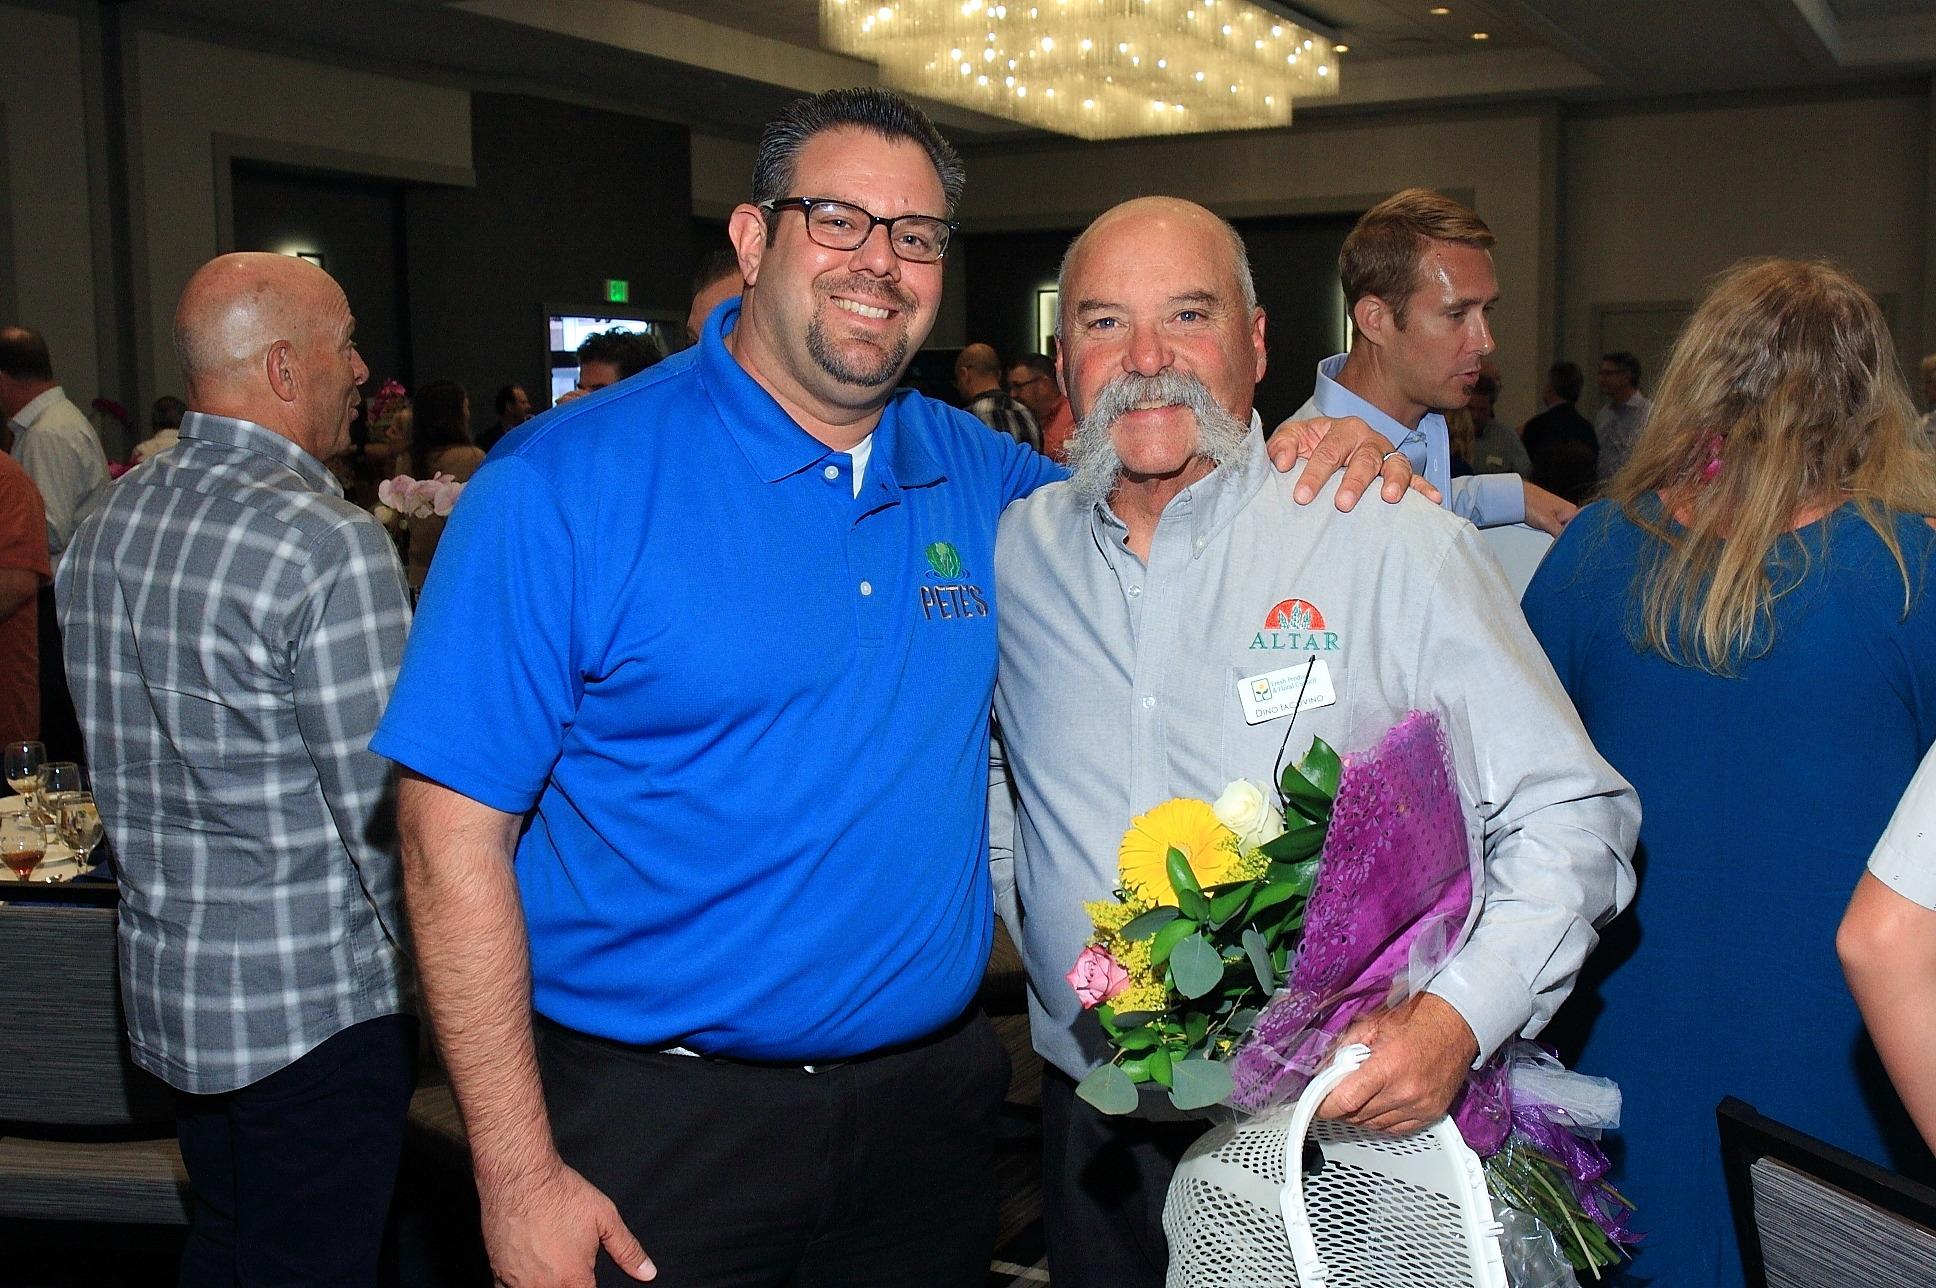 Brian Cook of Pete's with Dino Iacovino of Atlar Produce, LLC, patient speaker and cancer survivor.